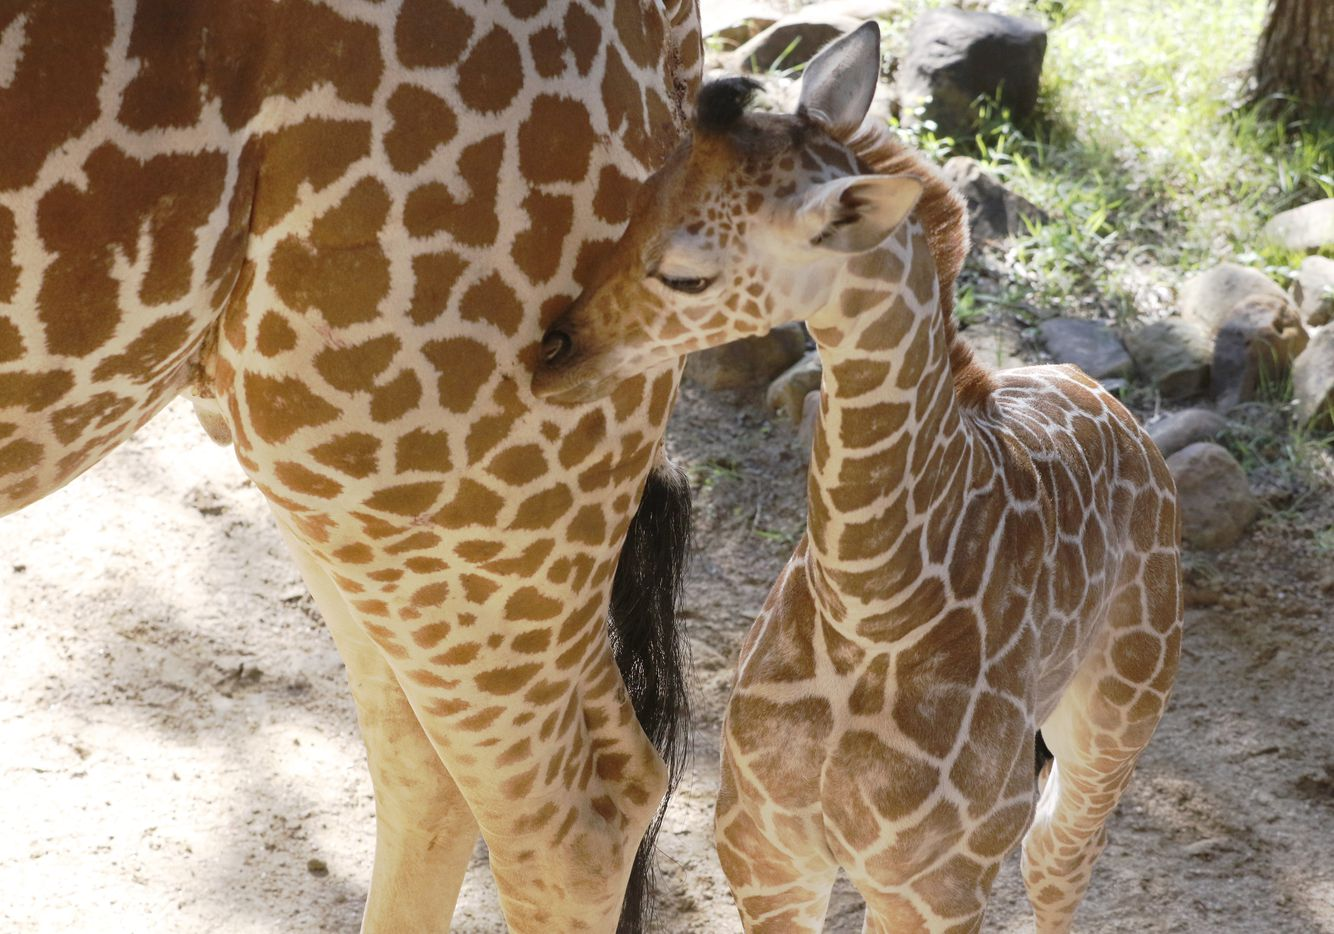 Three-week-old giraffe calf Tsavo born late last month to the Dallas Zoo's beloved giraffe Katie, made his first scheduled public appearance in the giraffe-feeding yard on Wednesday, June 21, 2017.